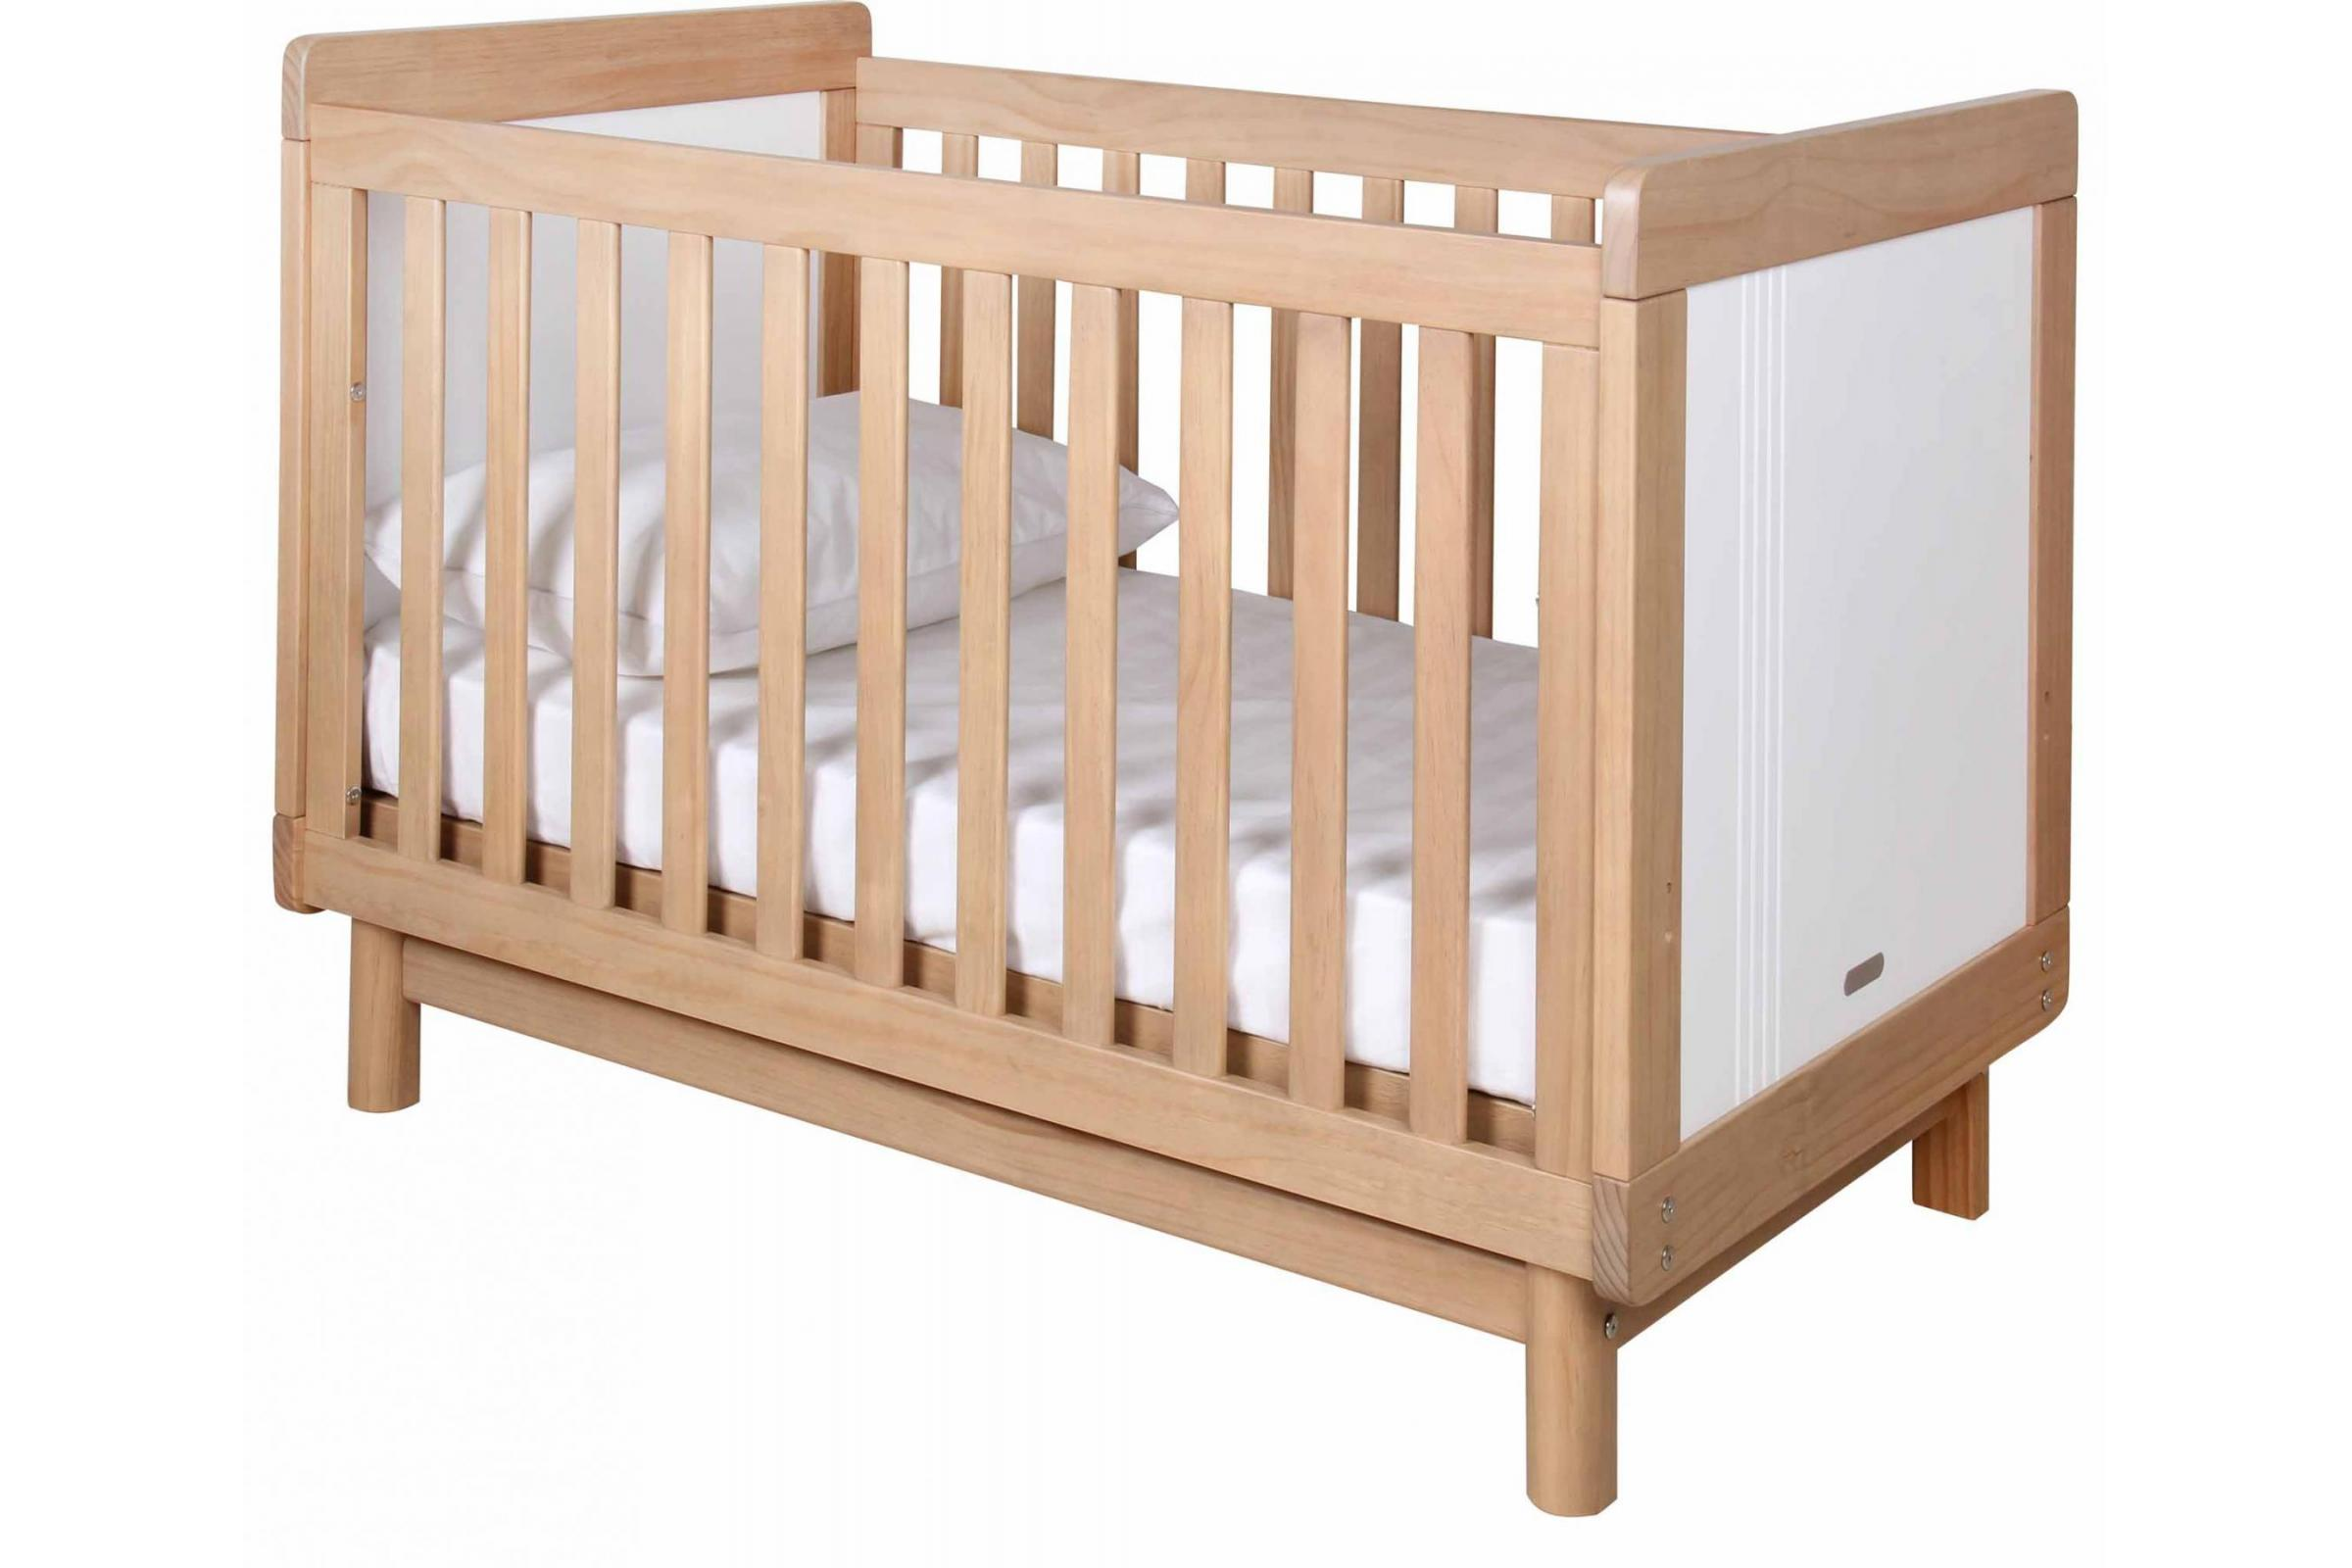 Grotime scandi cot babyroad Home furniture packages australia